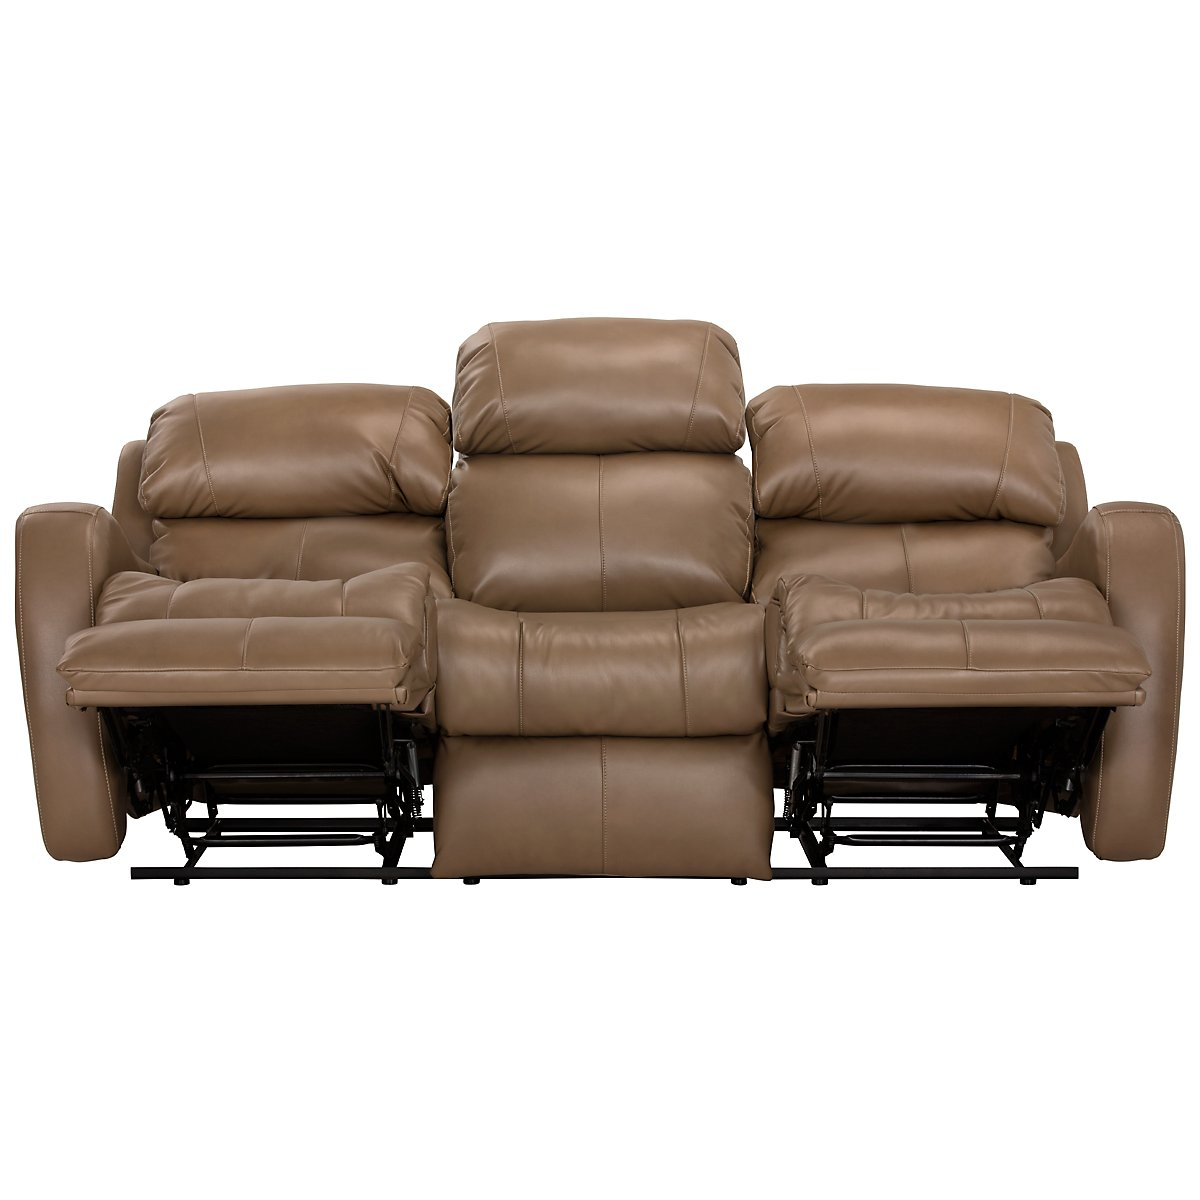 Brown Reclining Sofa Christmas Savings On Veneto Brown